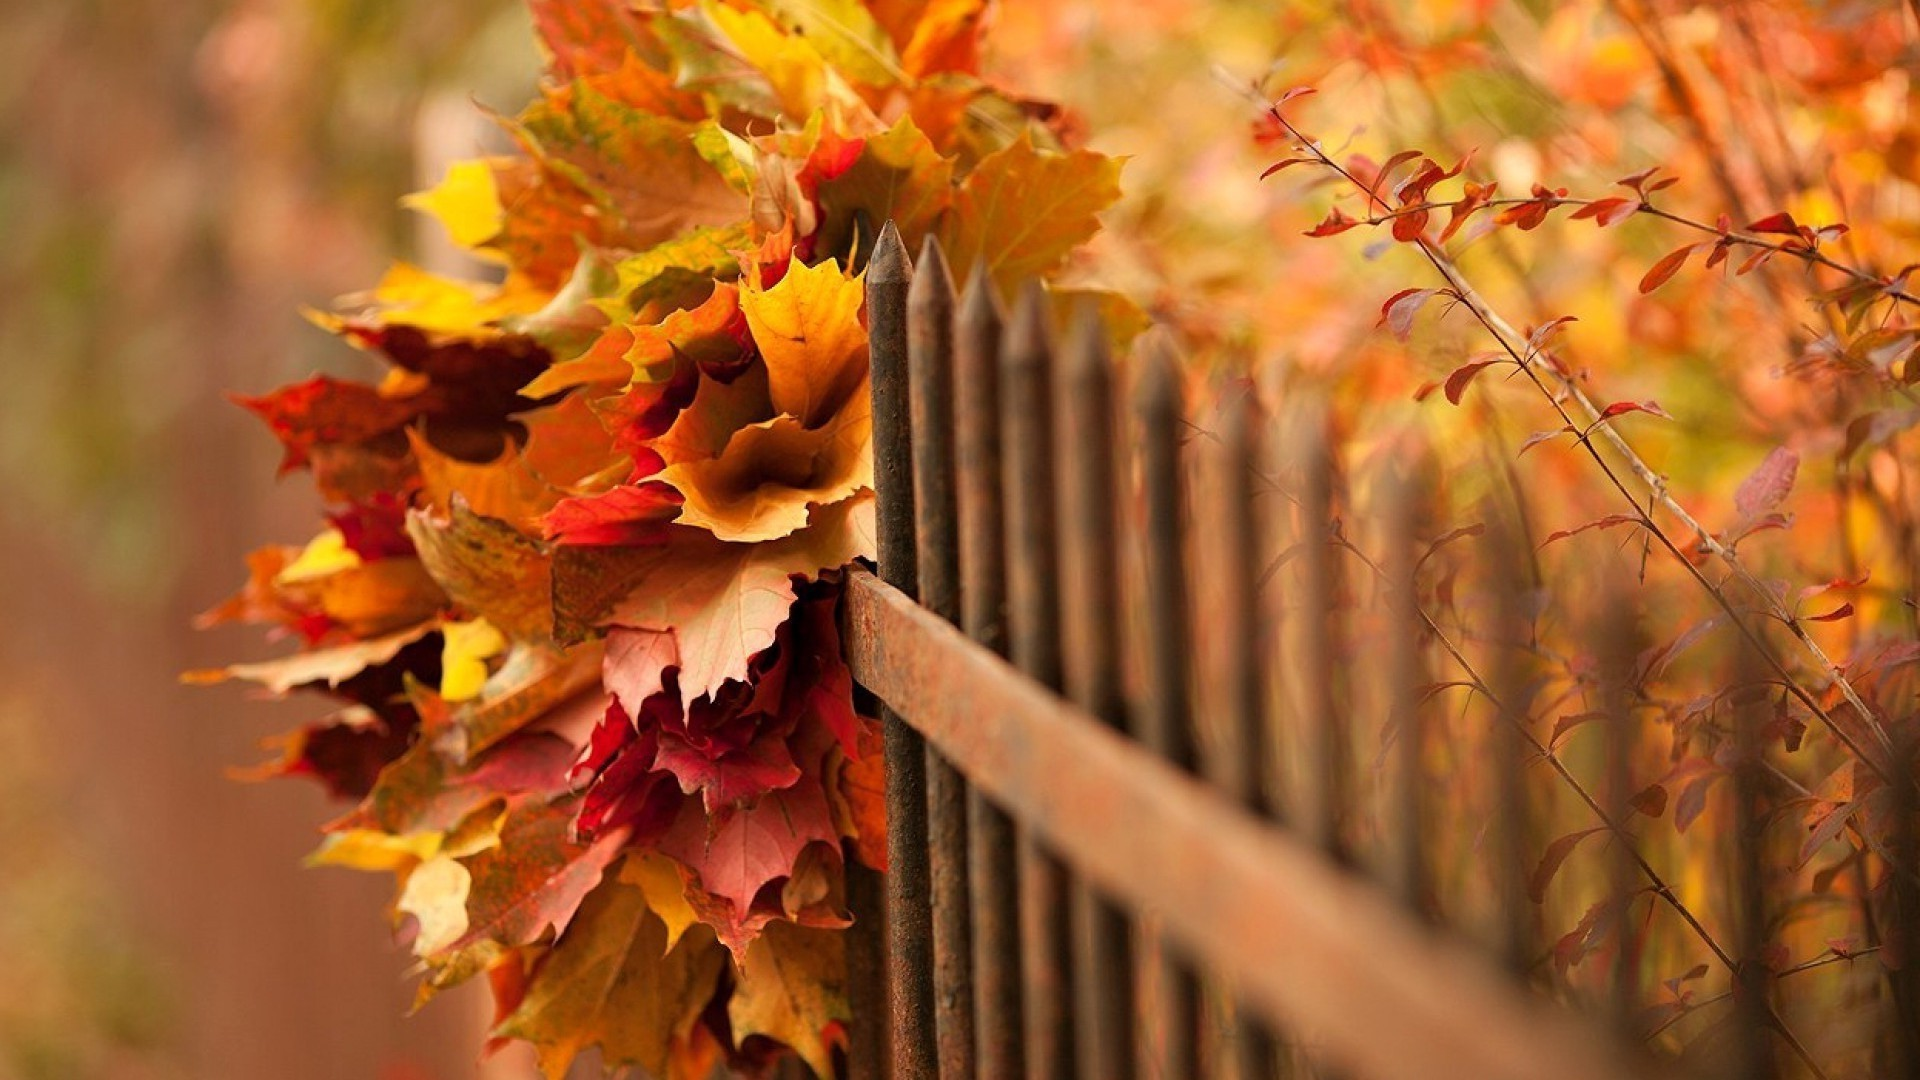 Fall Leaves Desktop Wallpaper Backgrounds Nature Trees Leaves Fall Branch Wood Fence Depth Of